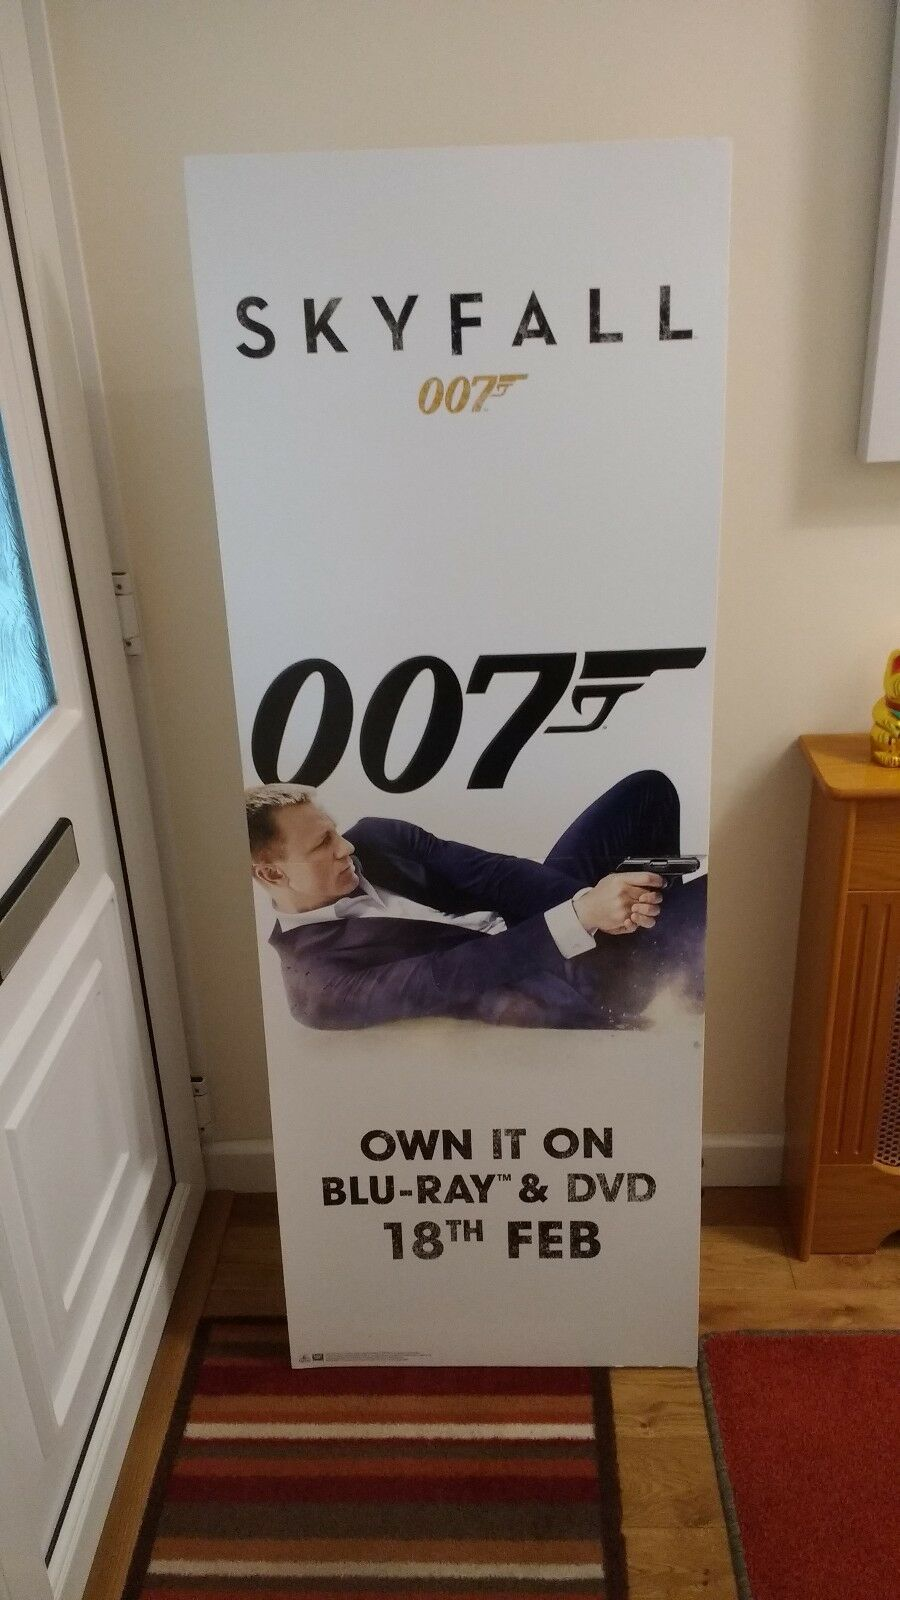 007 JAMES BOND SKYFALL ADgreenISING STANDEE.